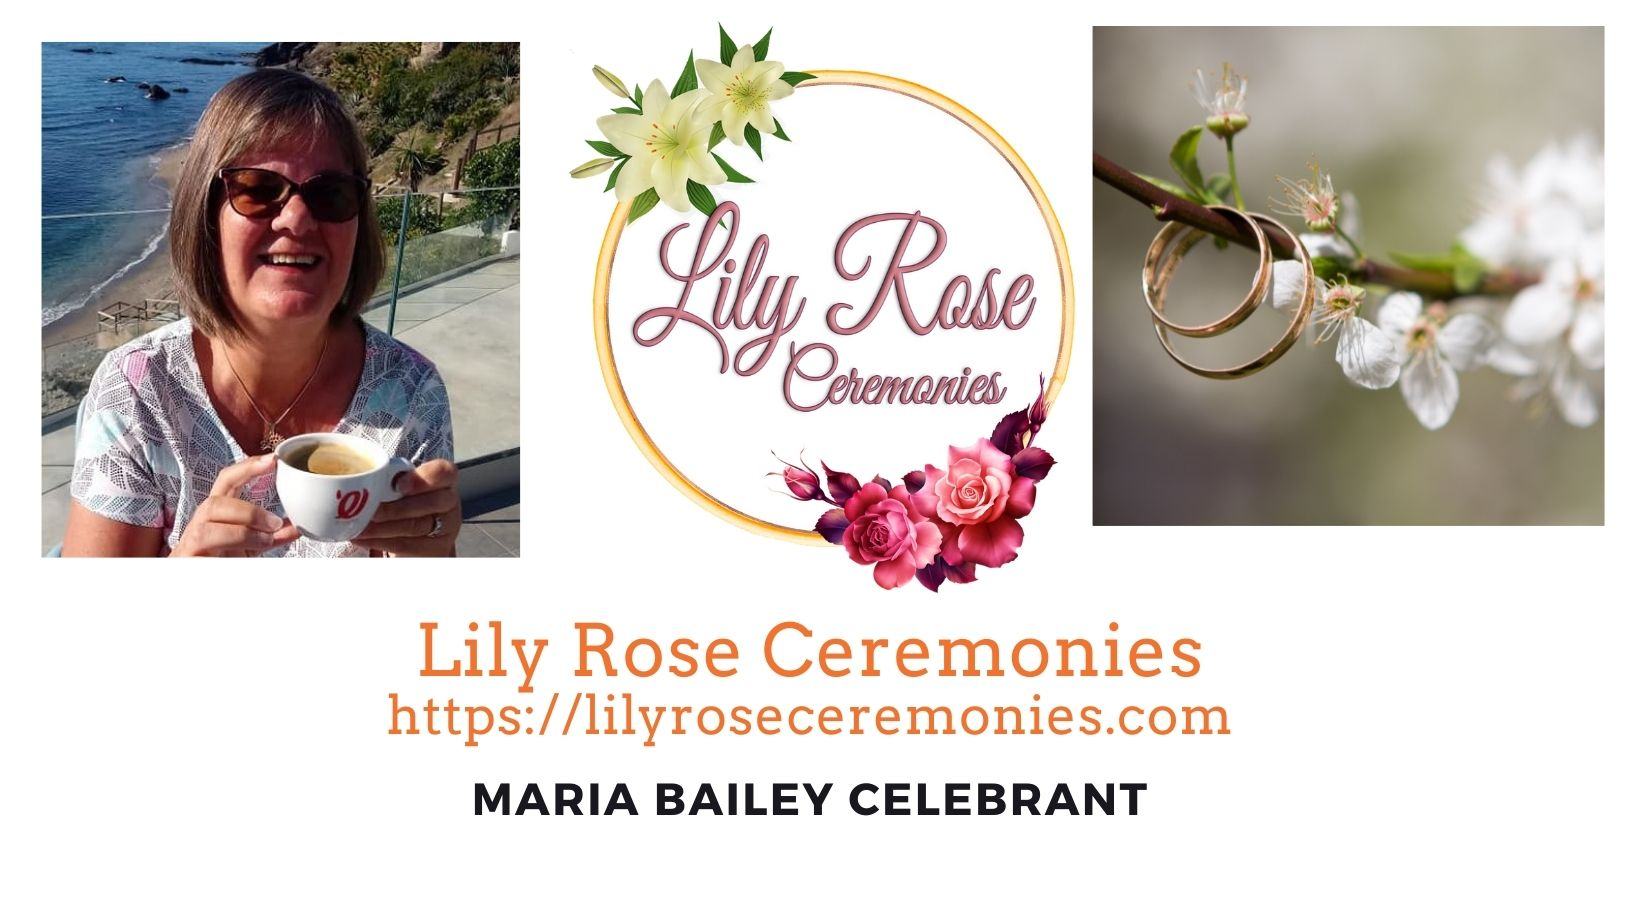 Lily Rose Ceremonies - new banner